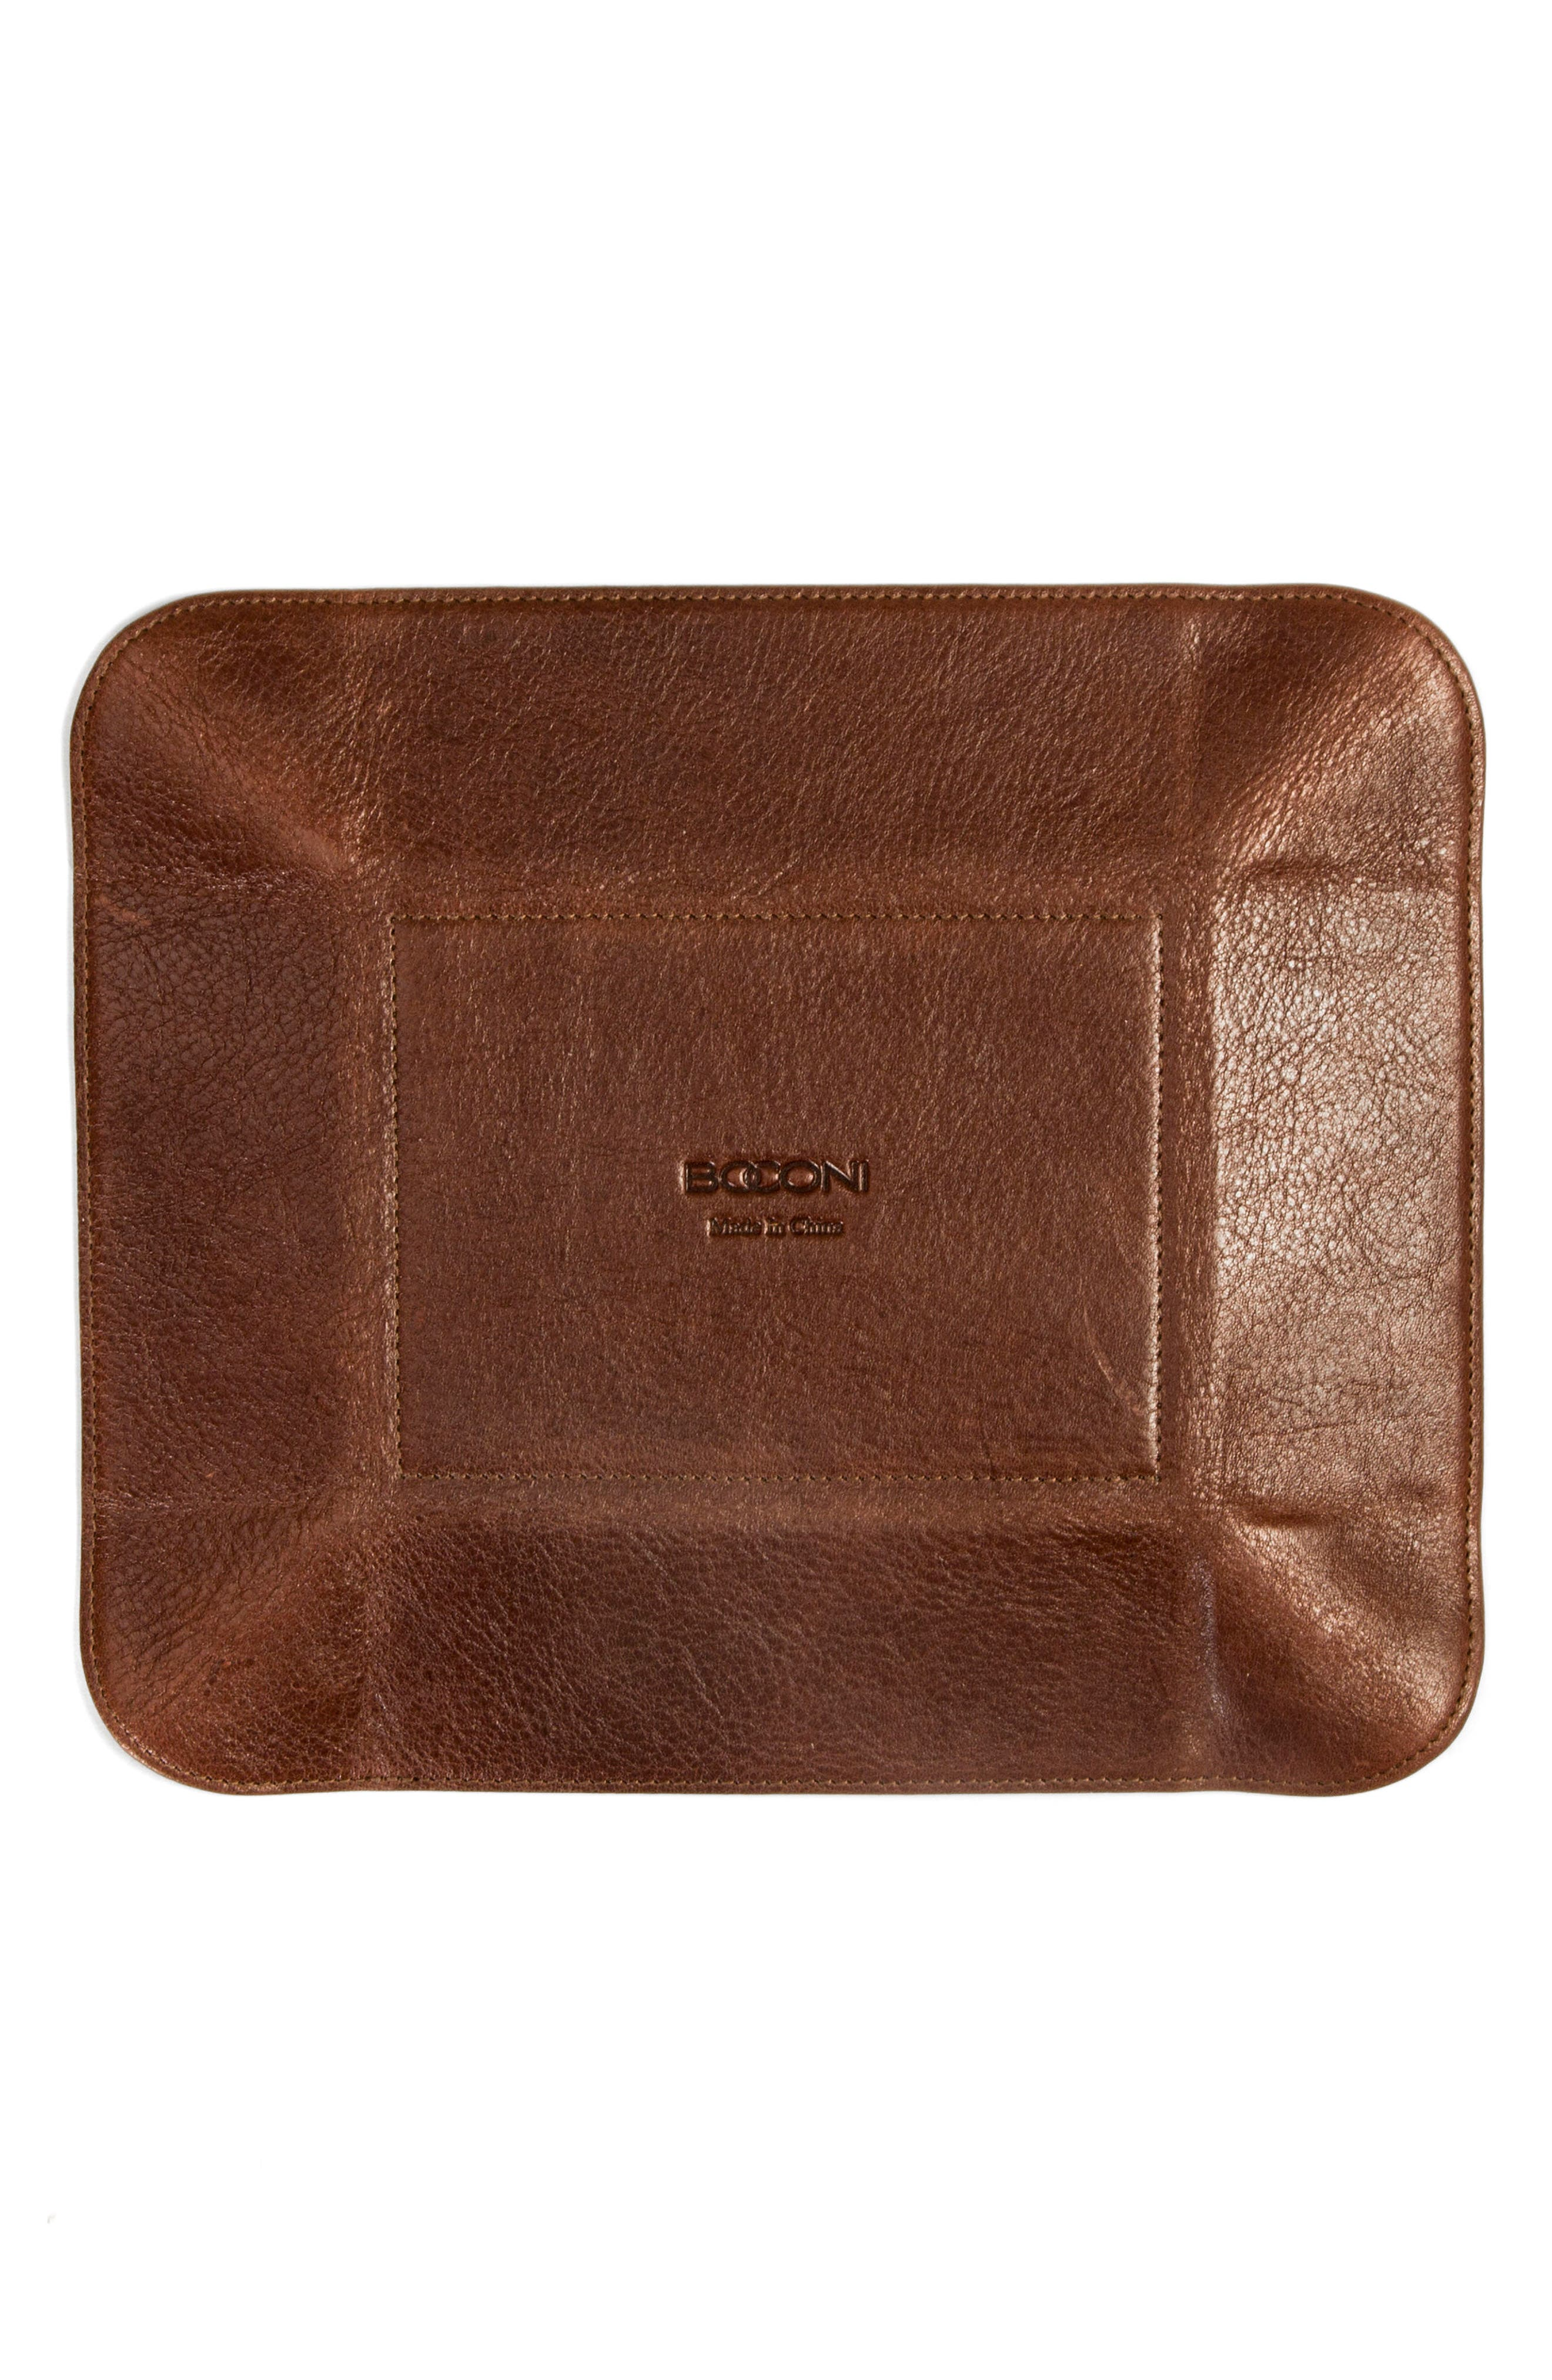 Becker Catchall Tray,                             Alternate thumbnail 4, color,                             Whiskey